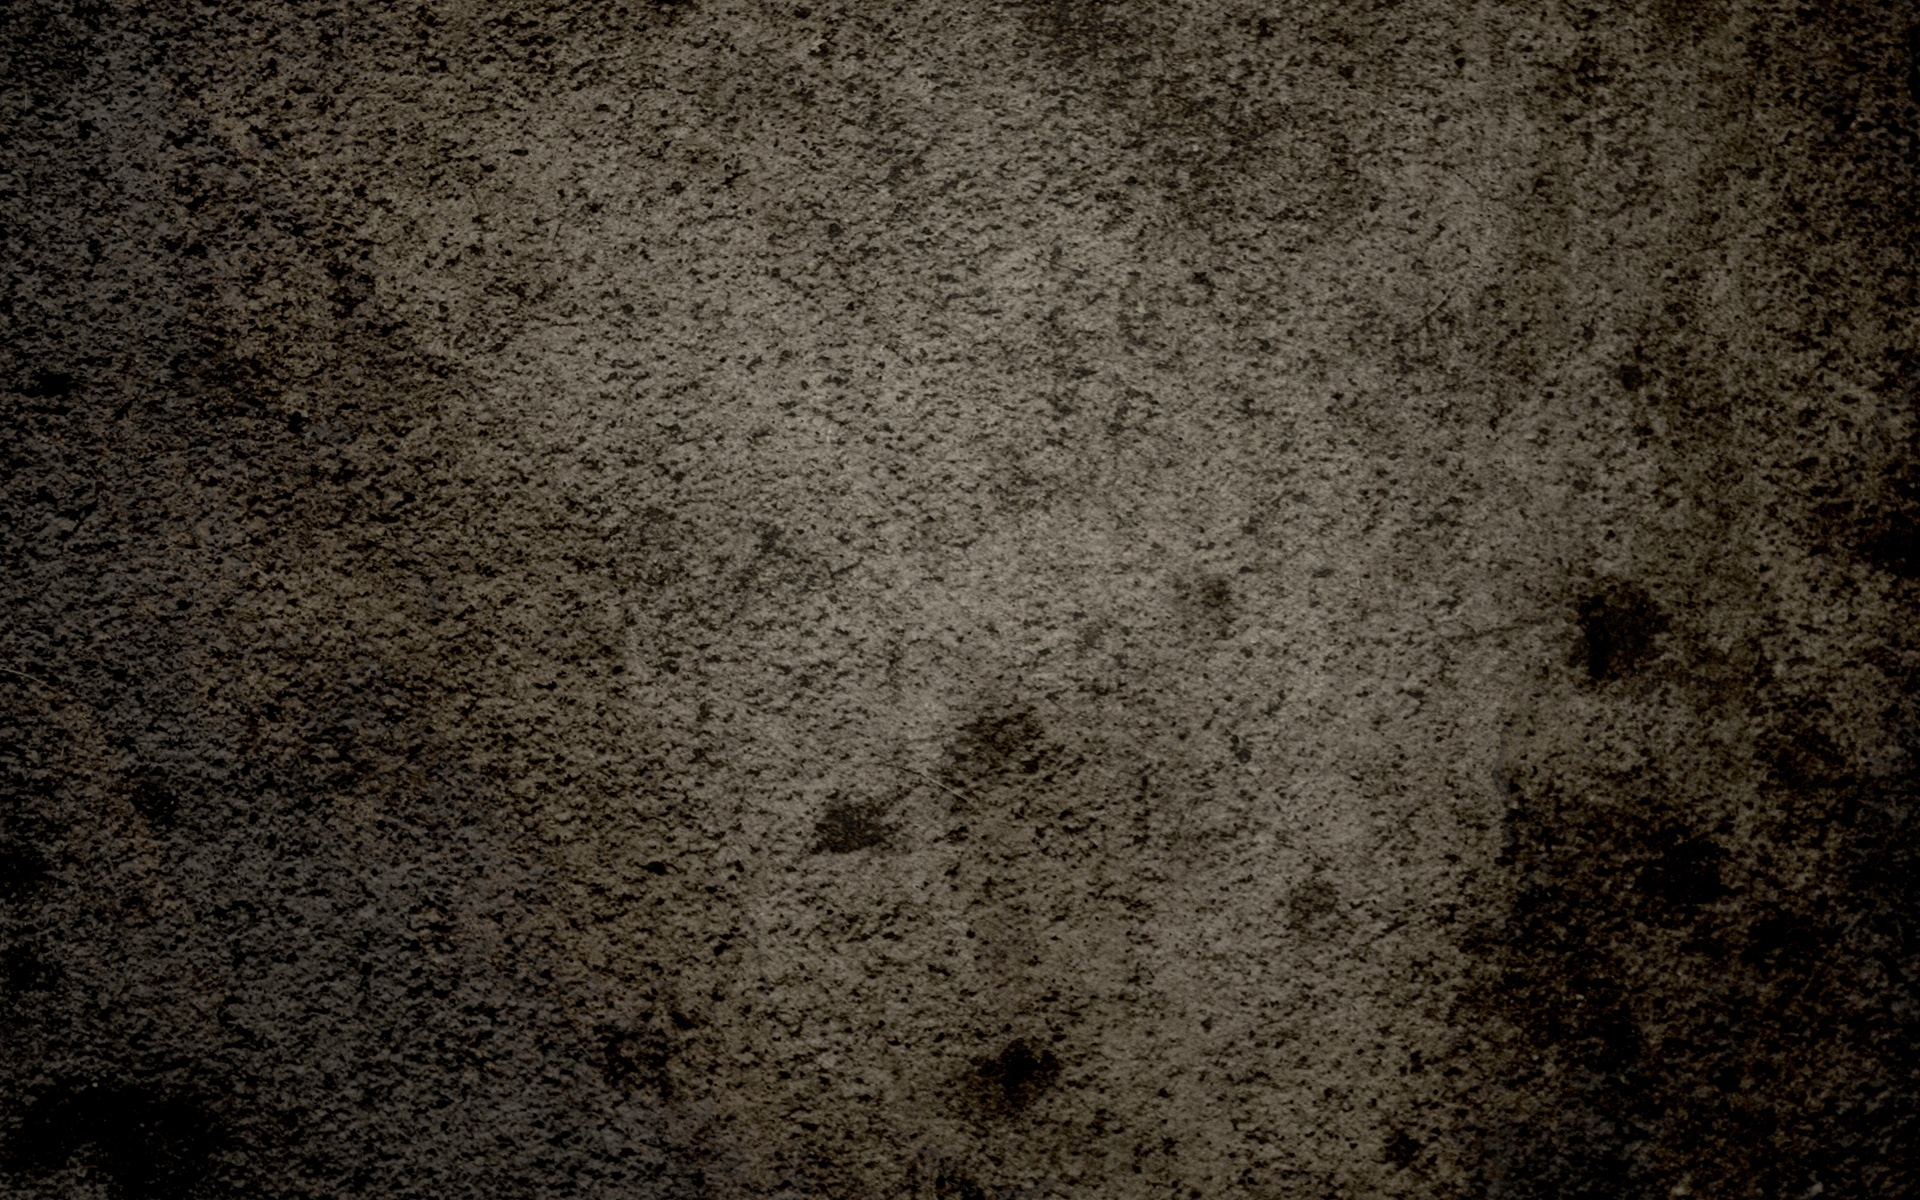 Sons Of Anarchy Iphone Wallpaper Wallpaper Dirty Pavement Grunge Texture 1920x1200